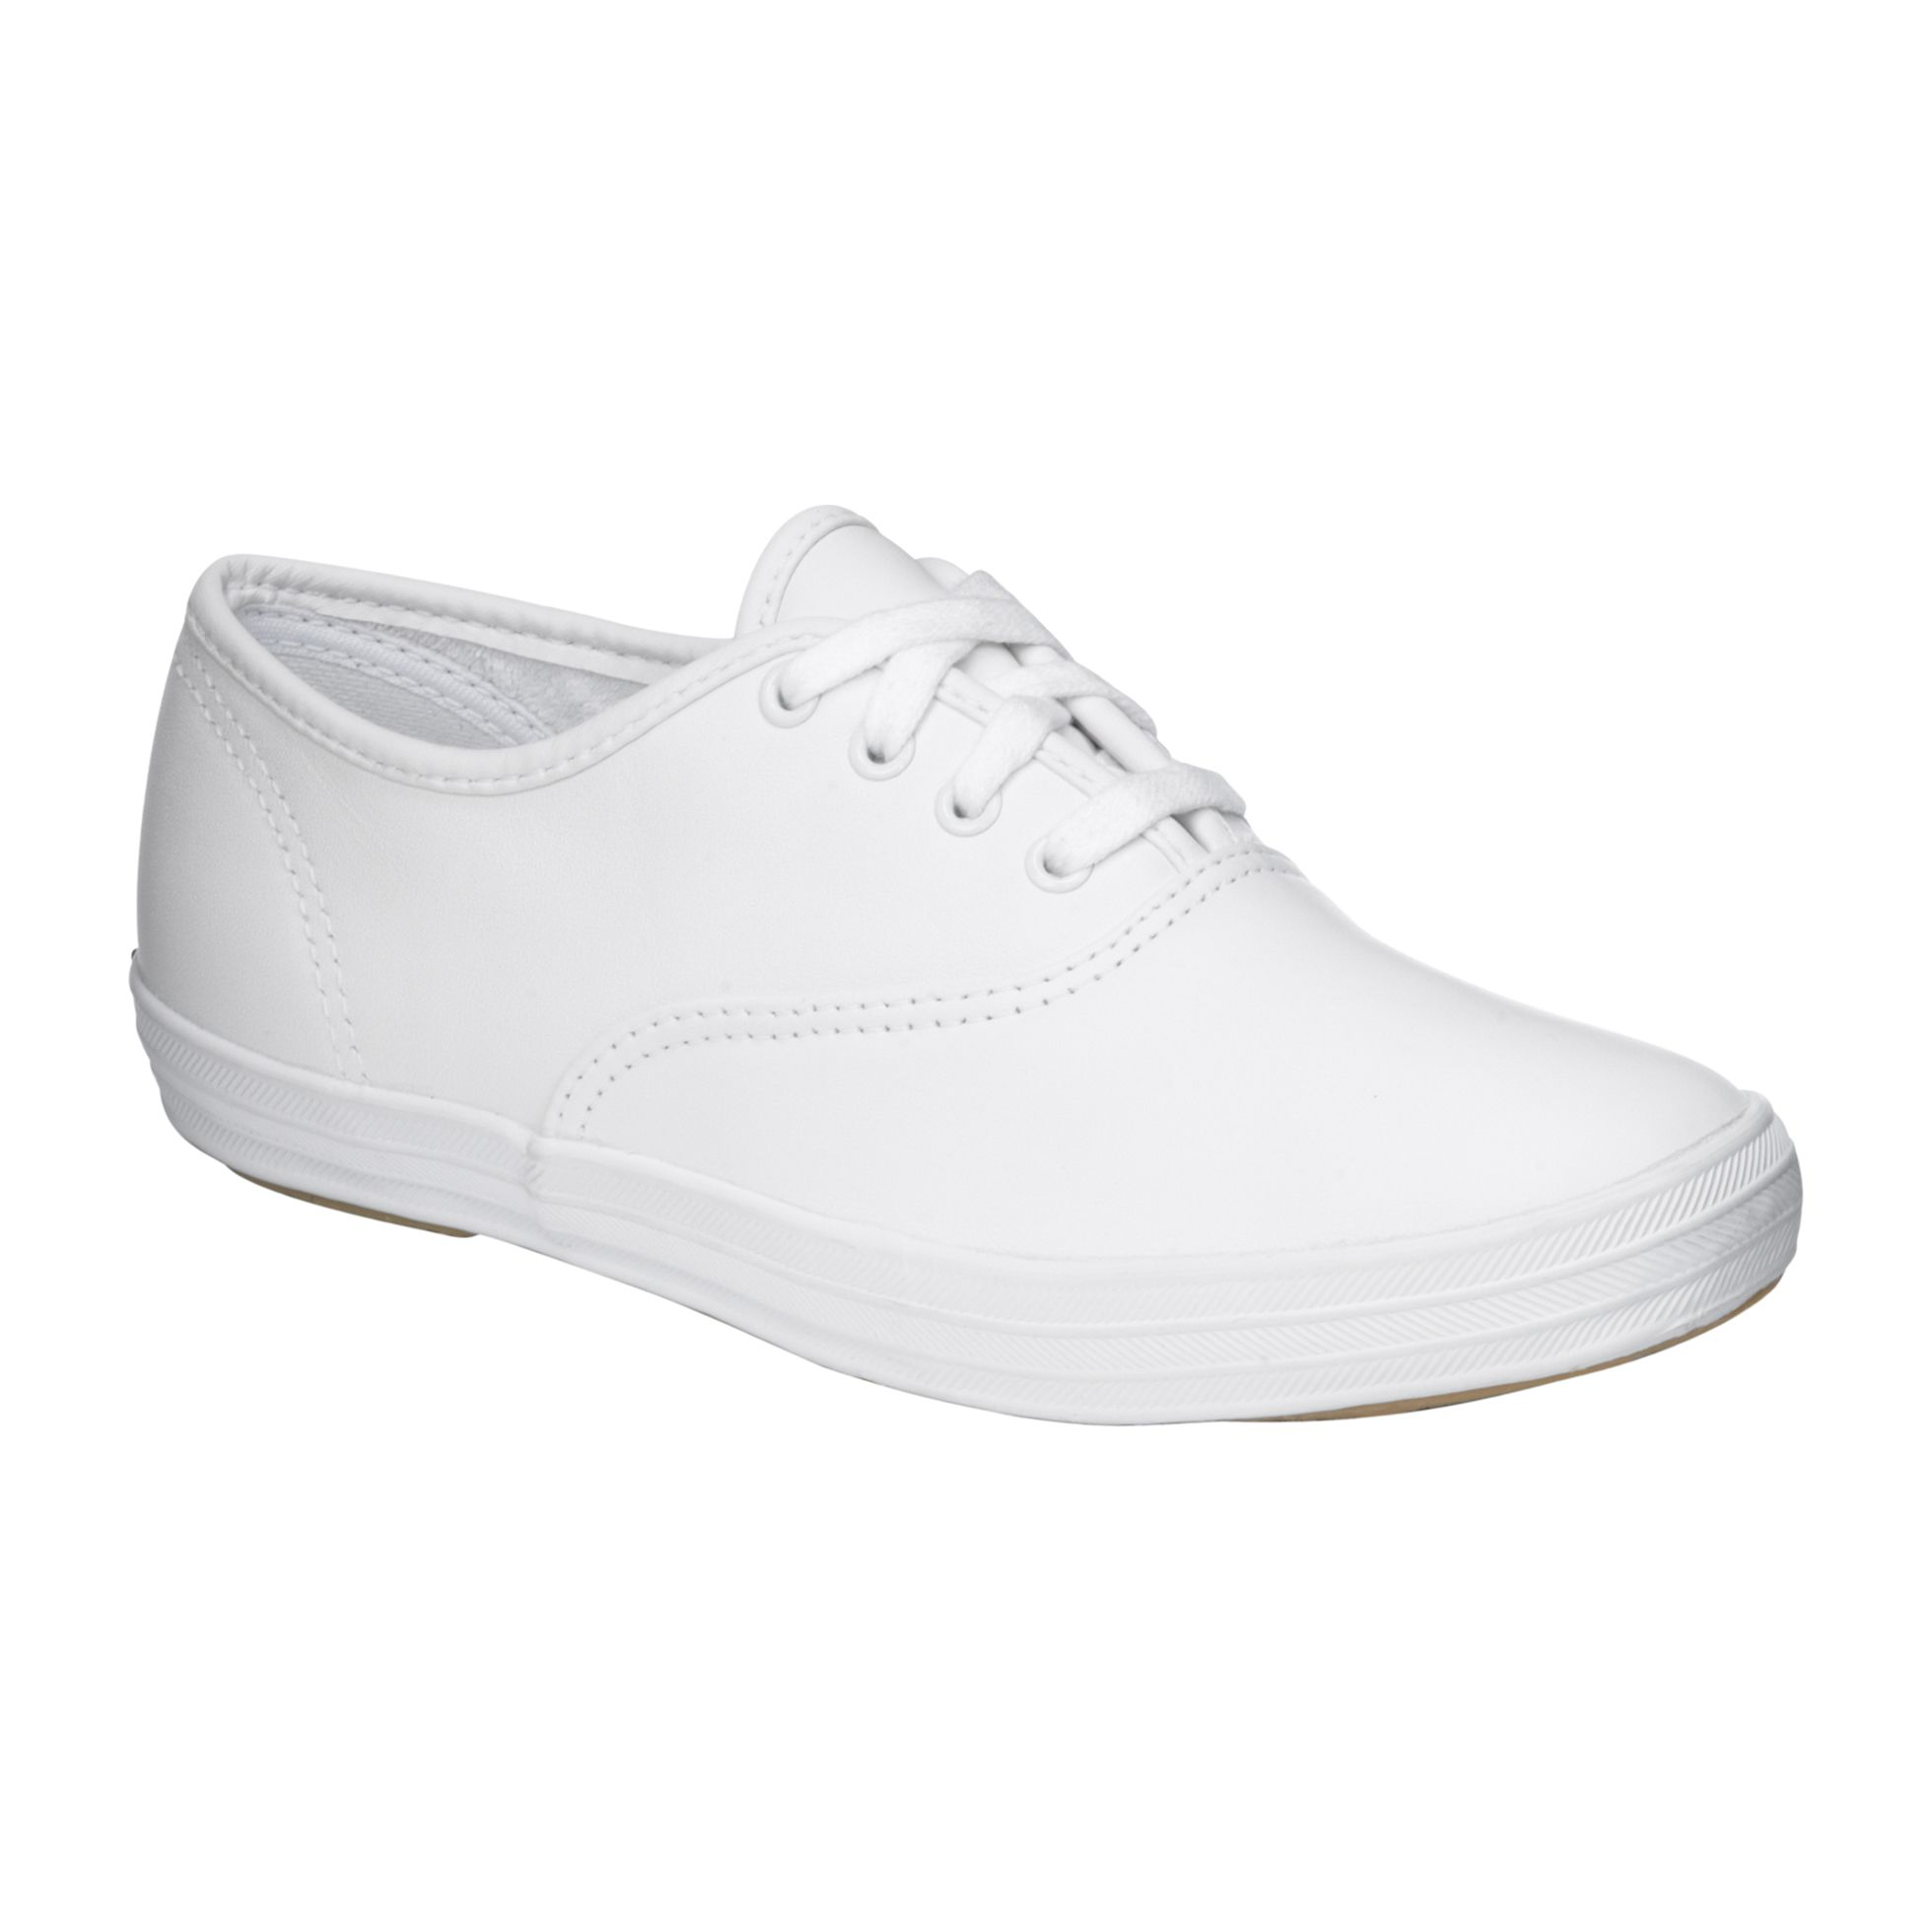 White Leather Slip On Shoes Womens